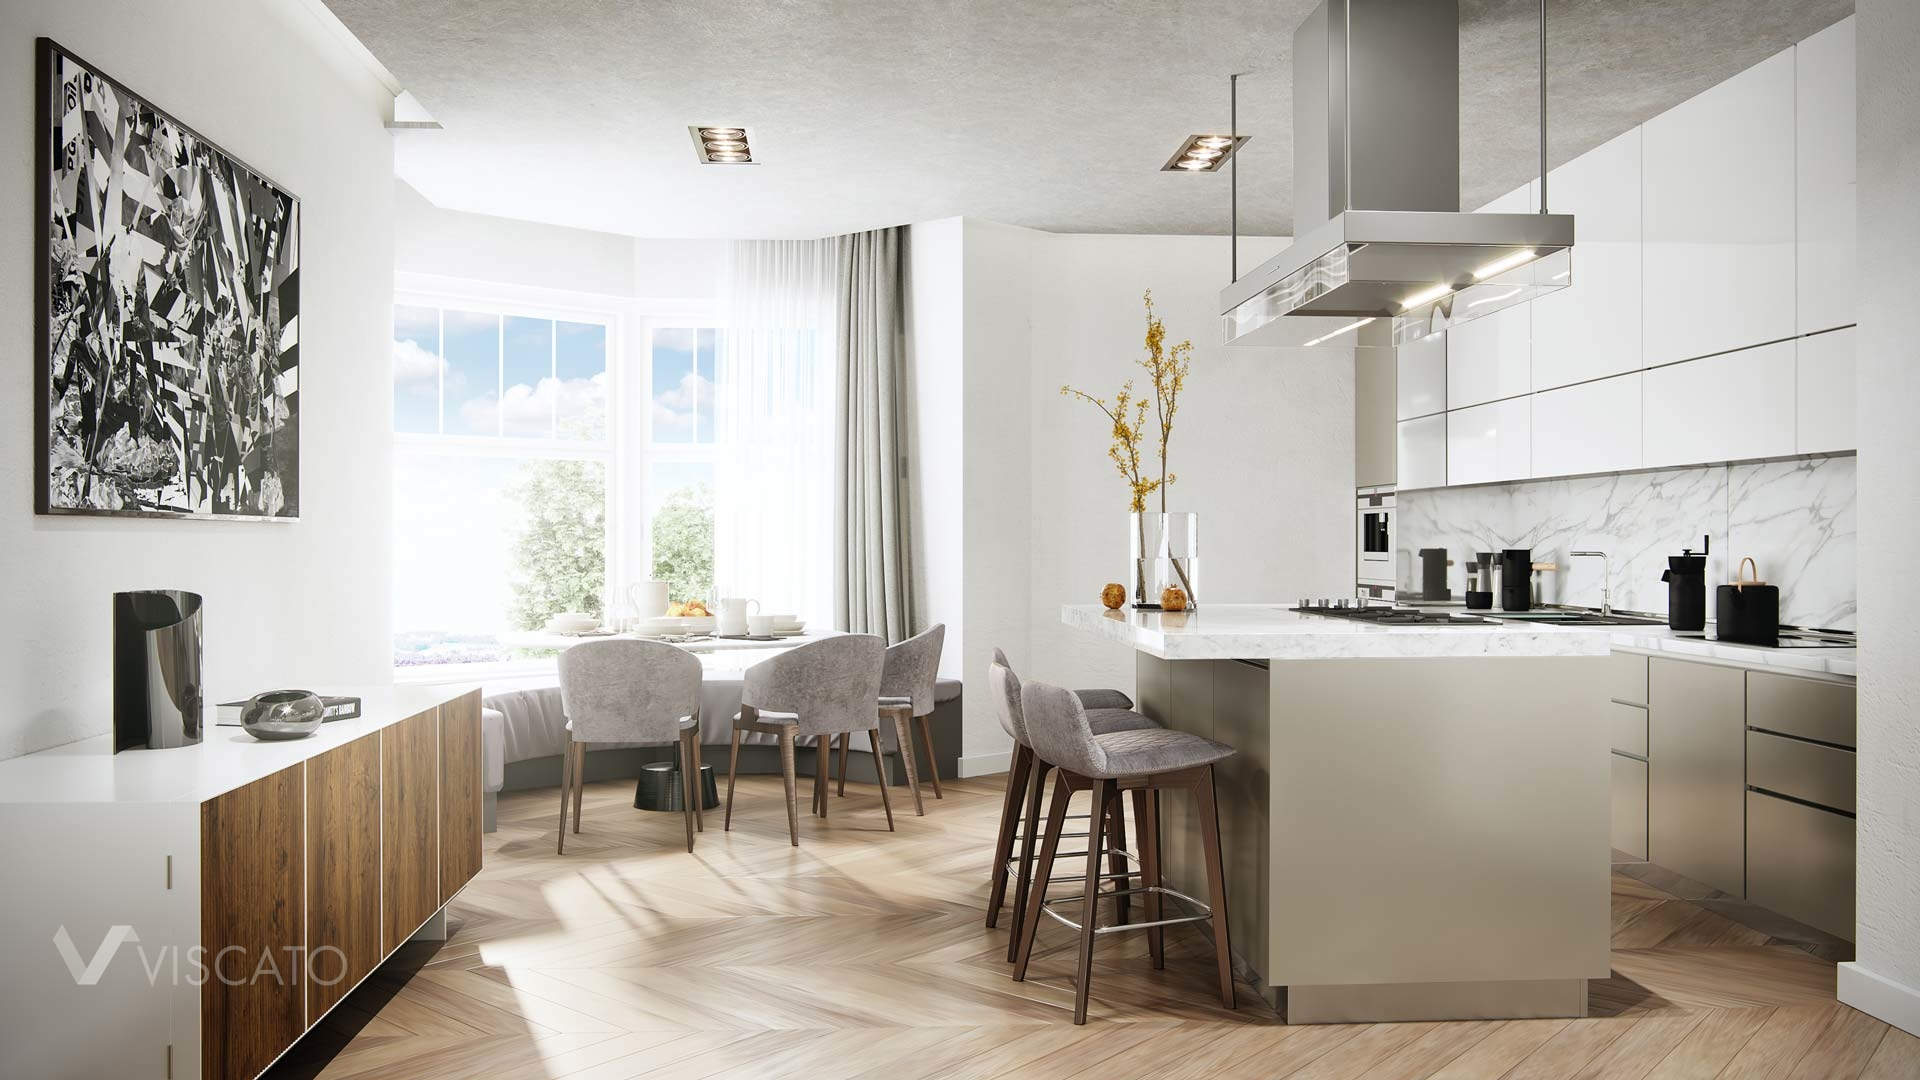 kitchen with an island and dining table, 3D Viscato